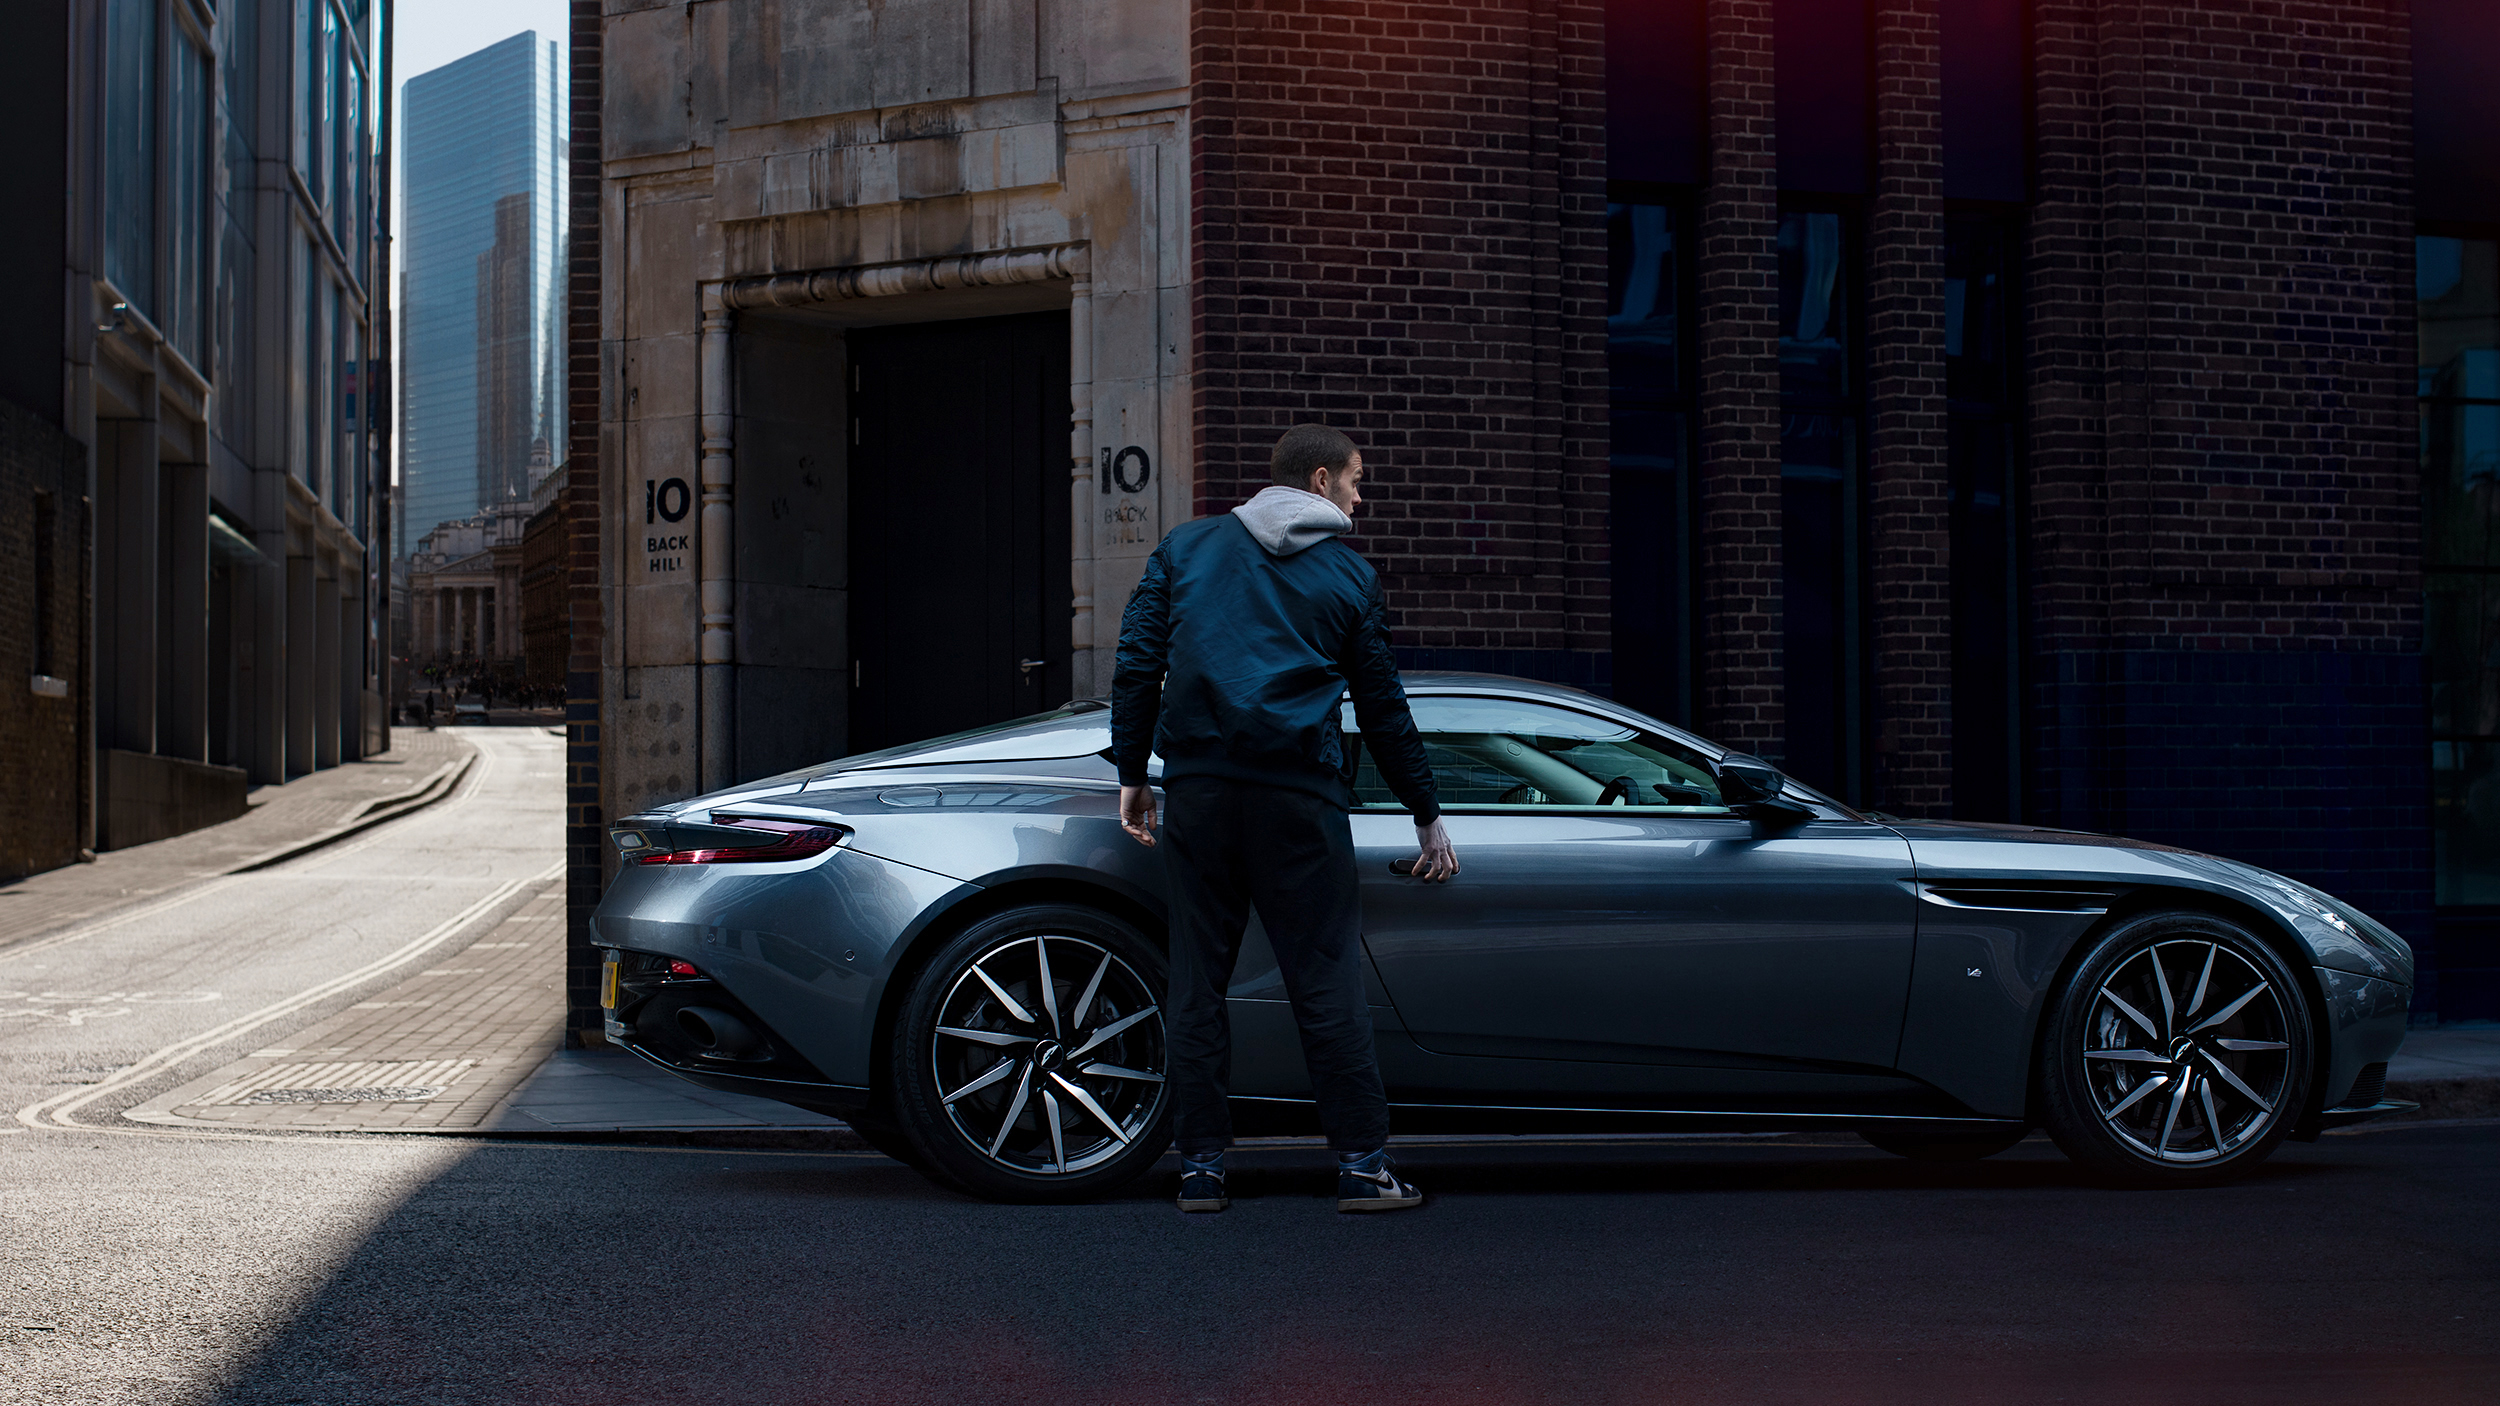 Marc_Trautmann_Aston_Martin_DB11_London_7_red_elements_brighter